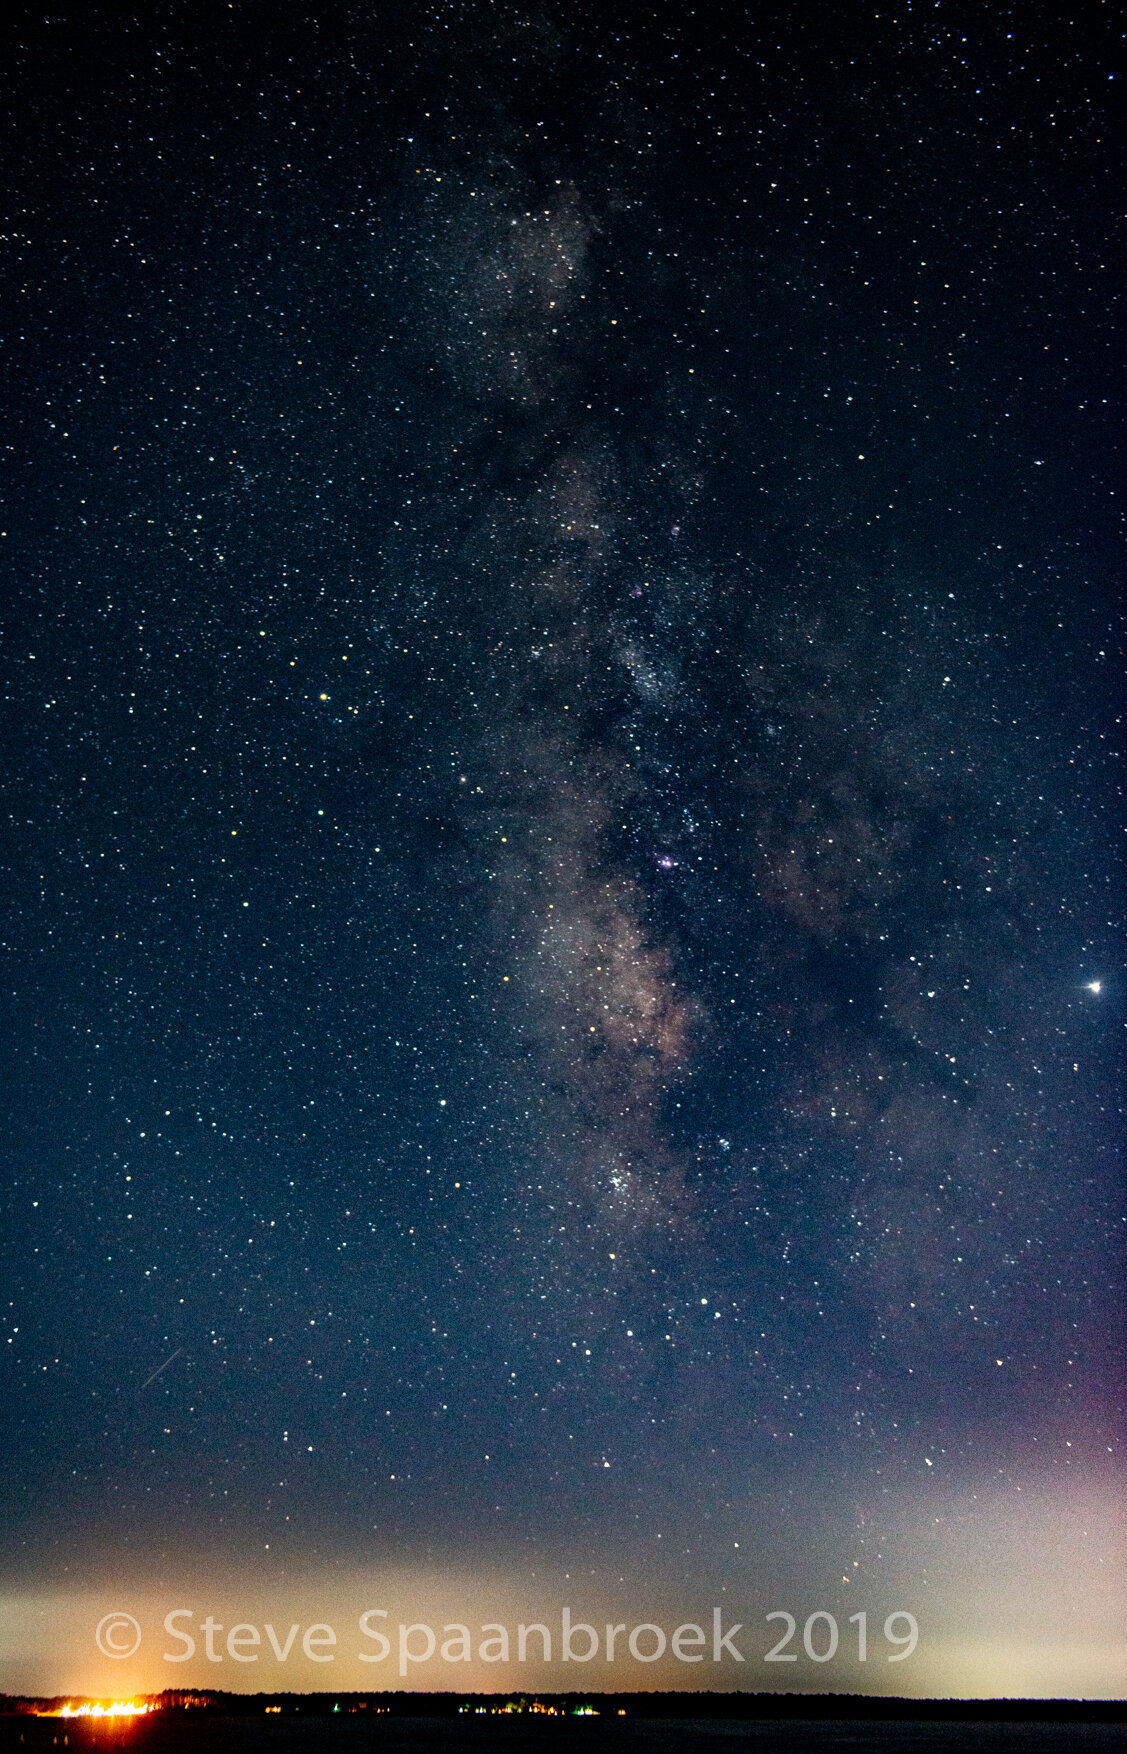 The Milky Way over the Neuse River